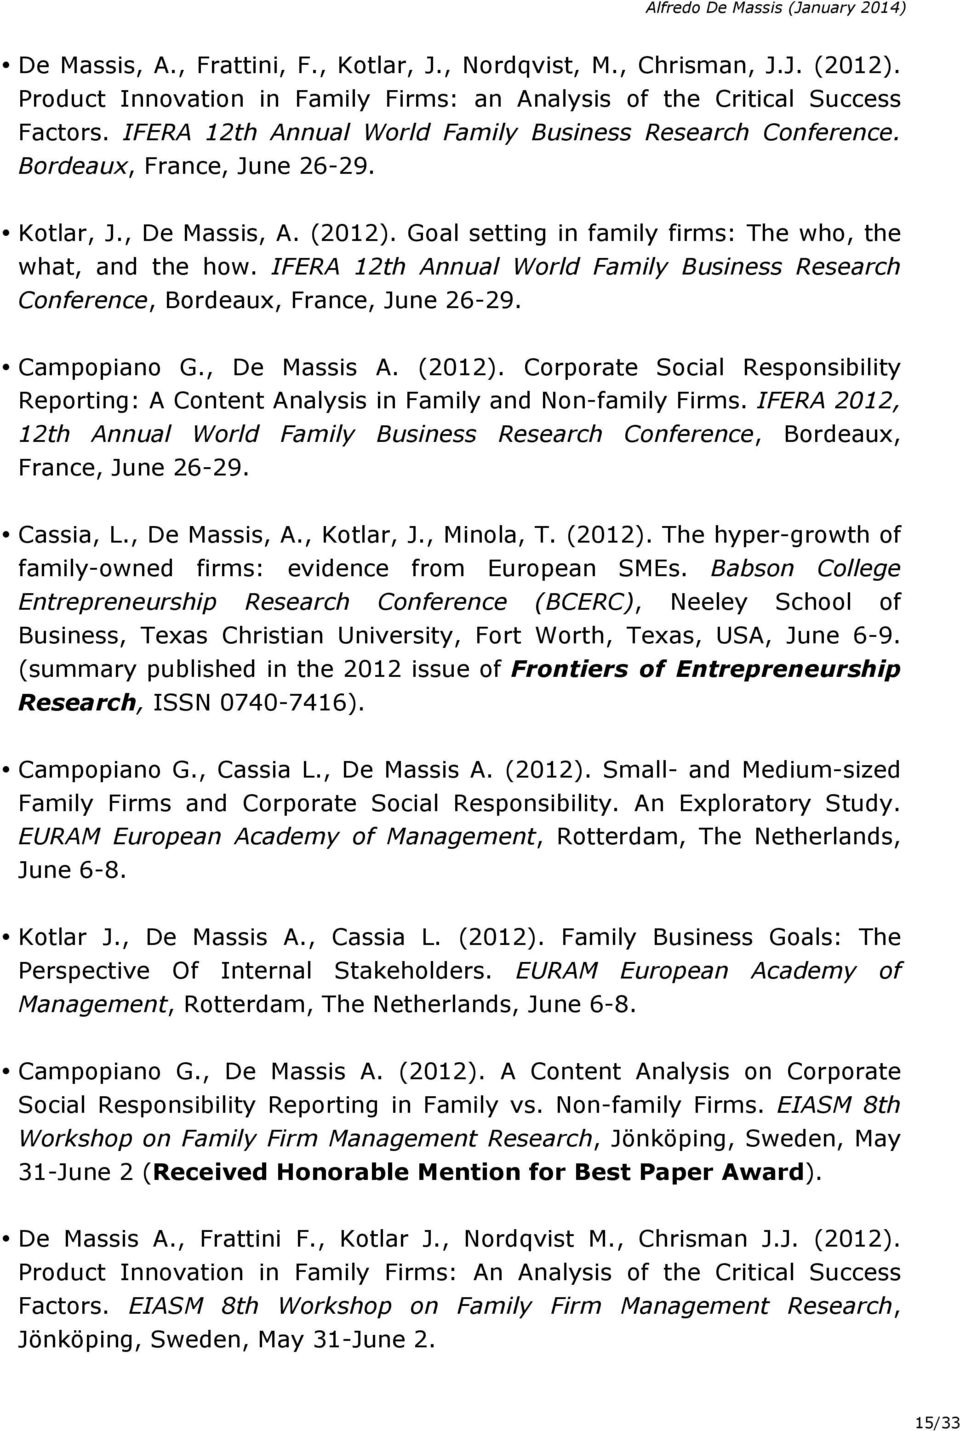 IFERA 12th Annual World Family Business Research Conference, Bordeaux, France, June 26-29. Campopiano G., De Massis A. (2012).